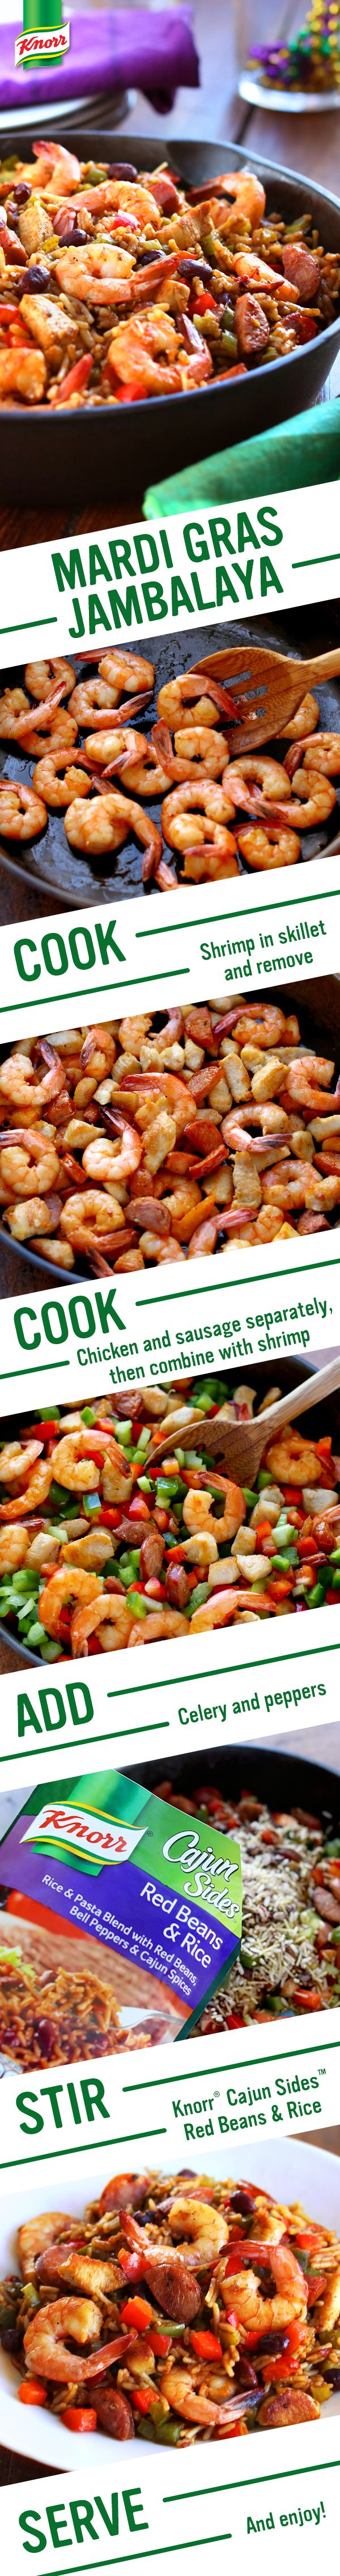 433 best cajun and creole recipes images on pinterest cajun